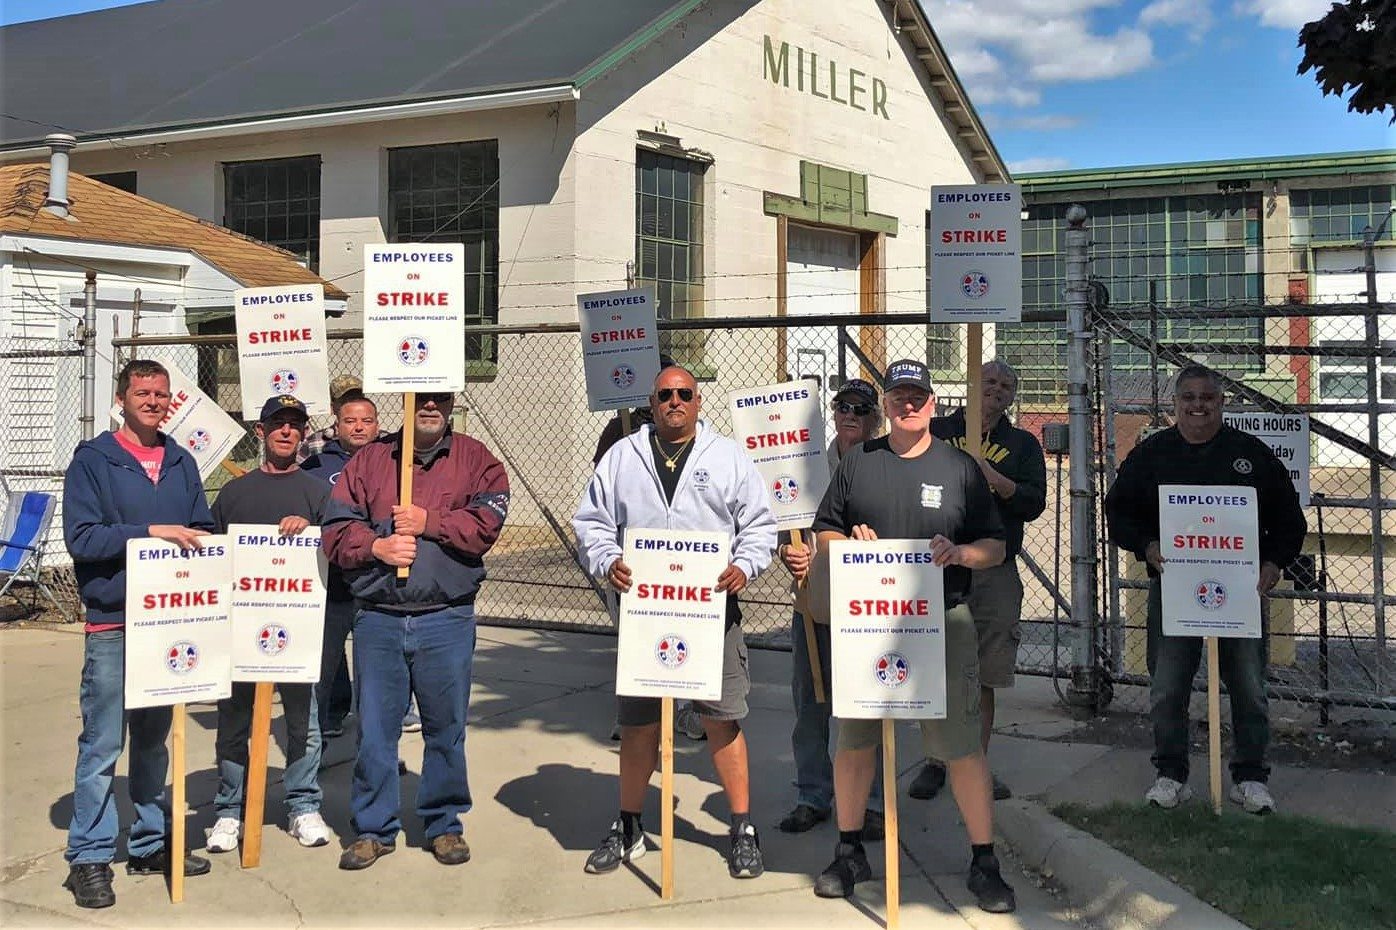 Michigan Local 435 Members Reach Agreement to Retain Pension, End 3 Week Strike